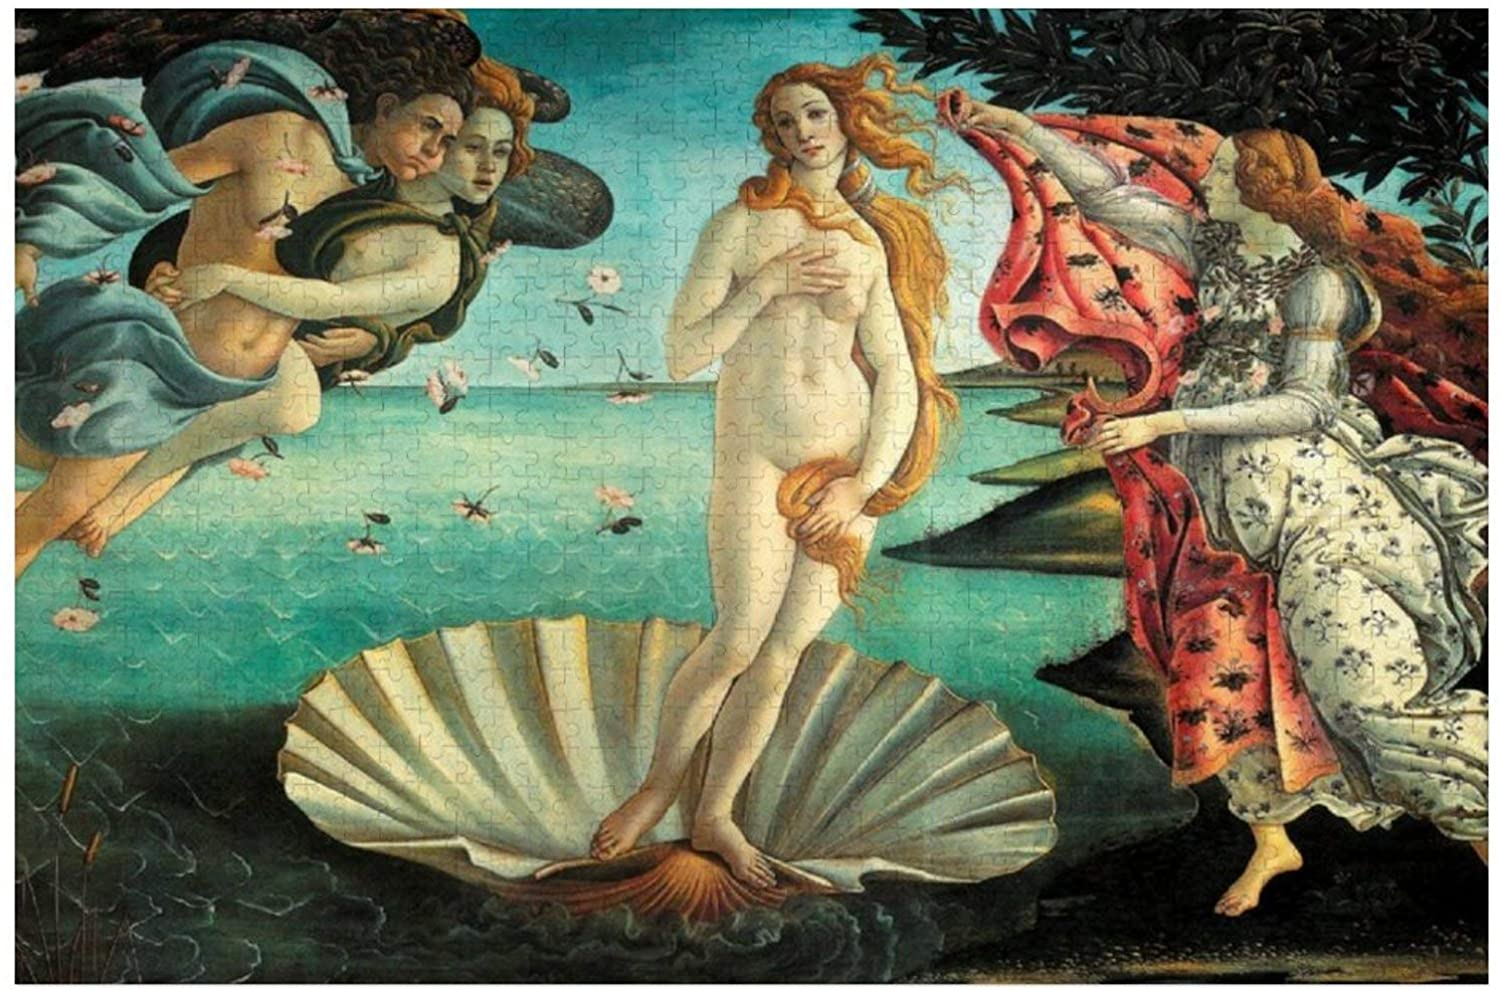 The Birth of Venus Classic Art by Botticelli Puzzles for Adults, 1000 Piece Kids Jigsaw Puzzles Game Toys Gift for Children Boys and Girls, 20 x 30